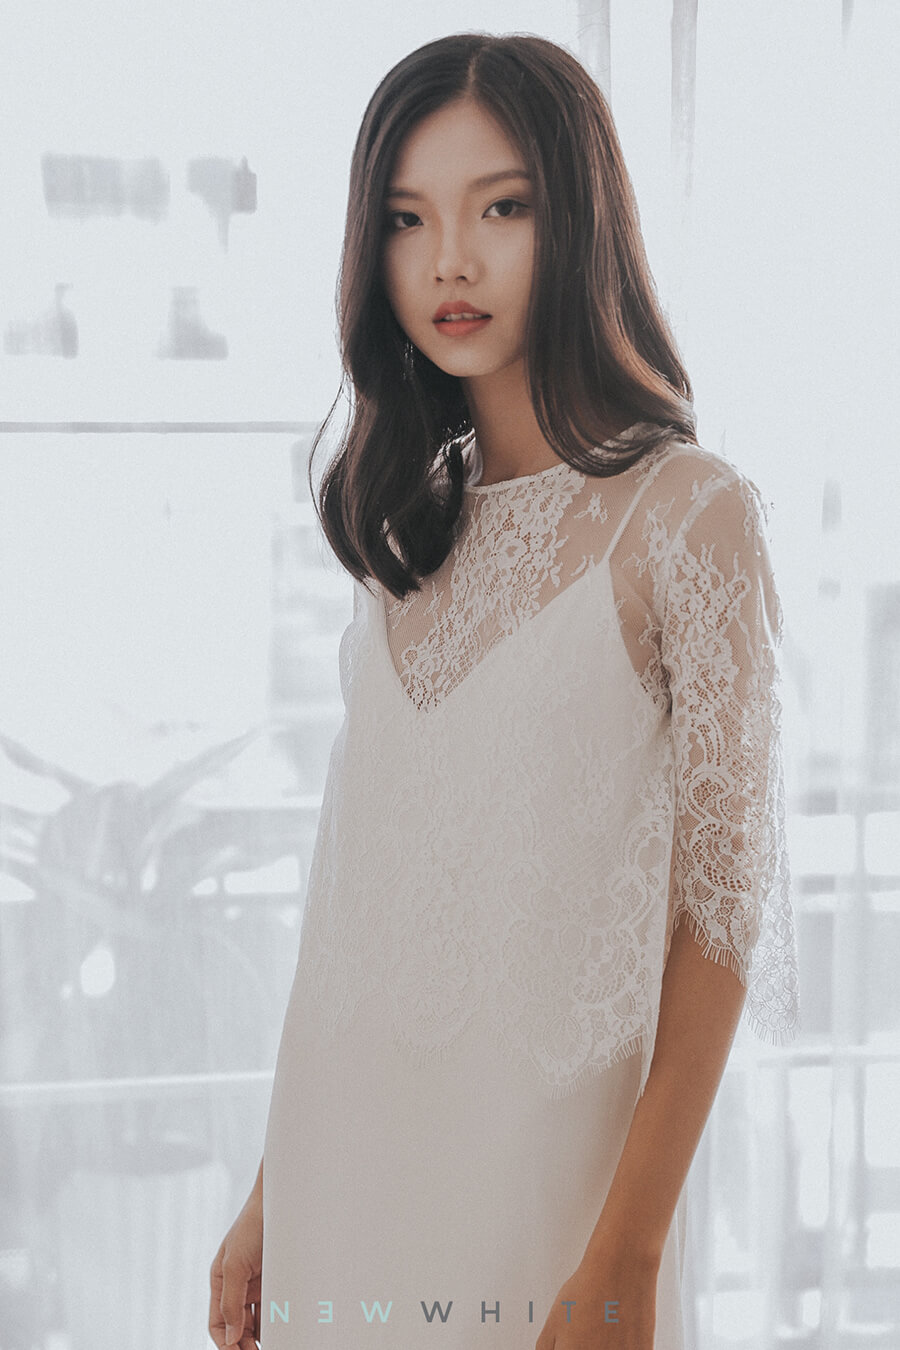 NW-026 - Flare Lace Top  _ NW-024 - Camisole Dress